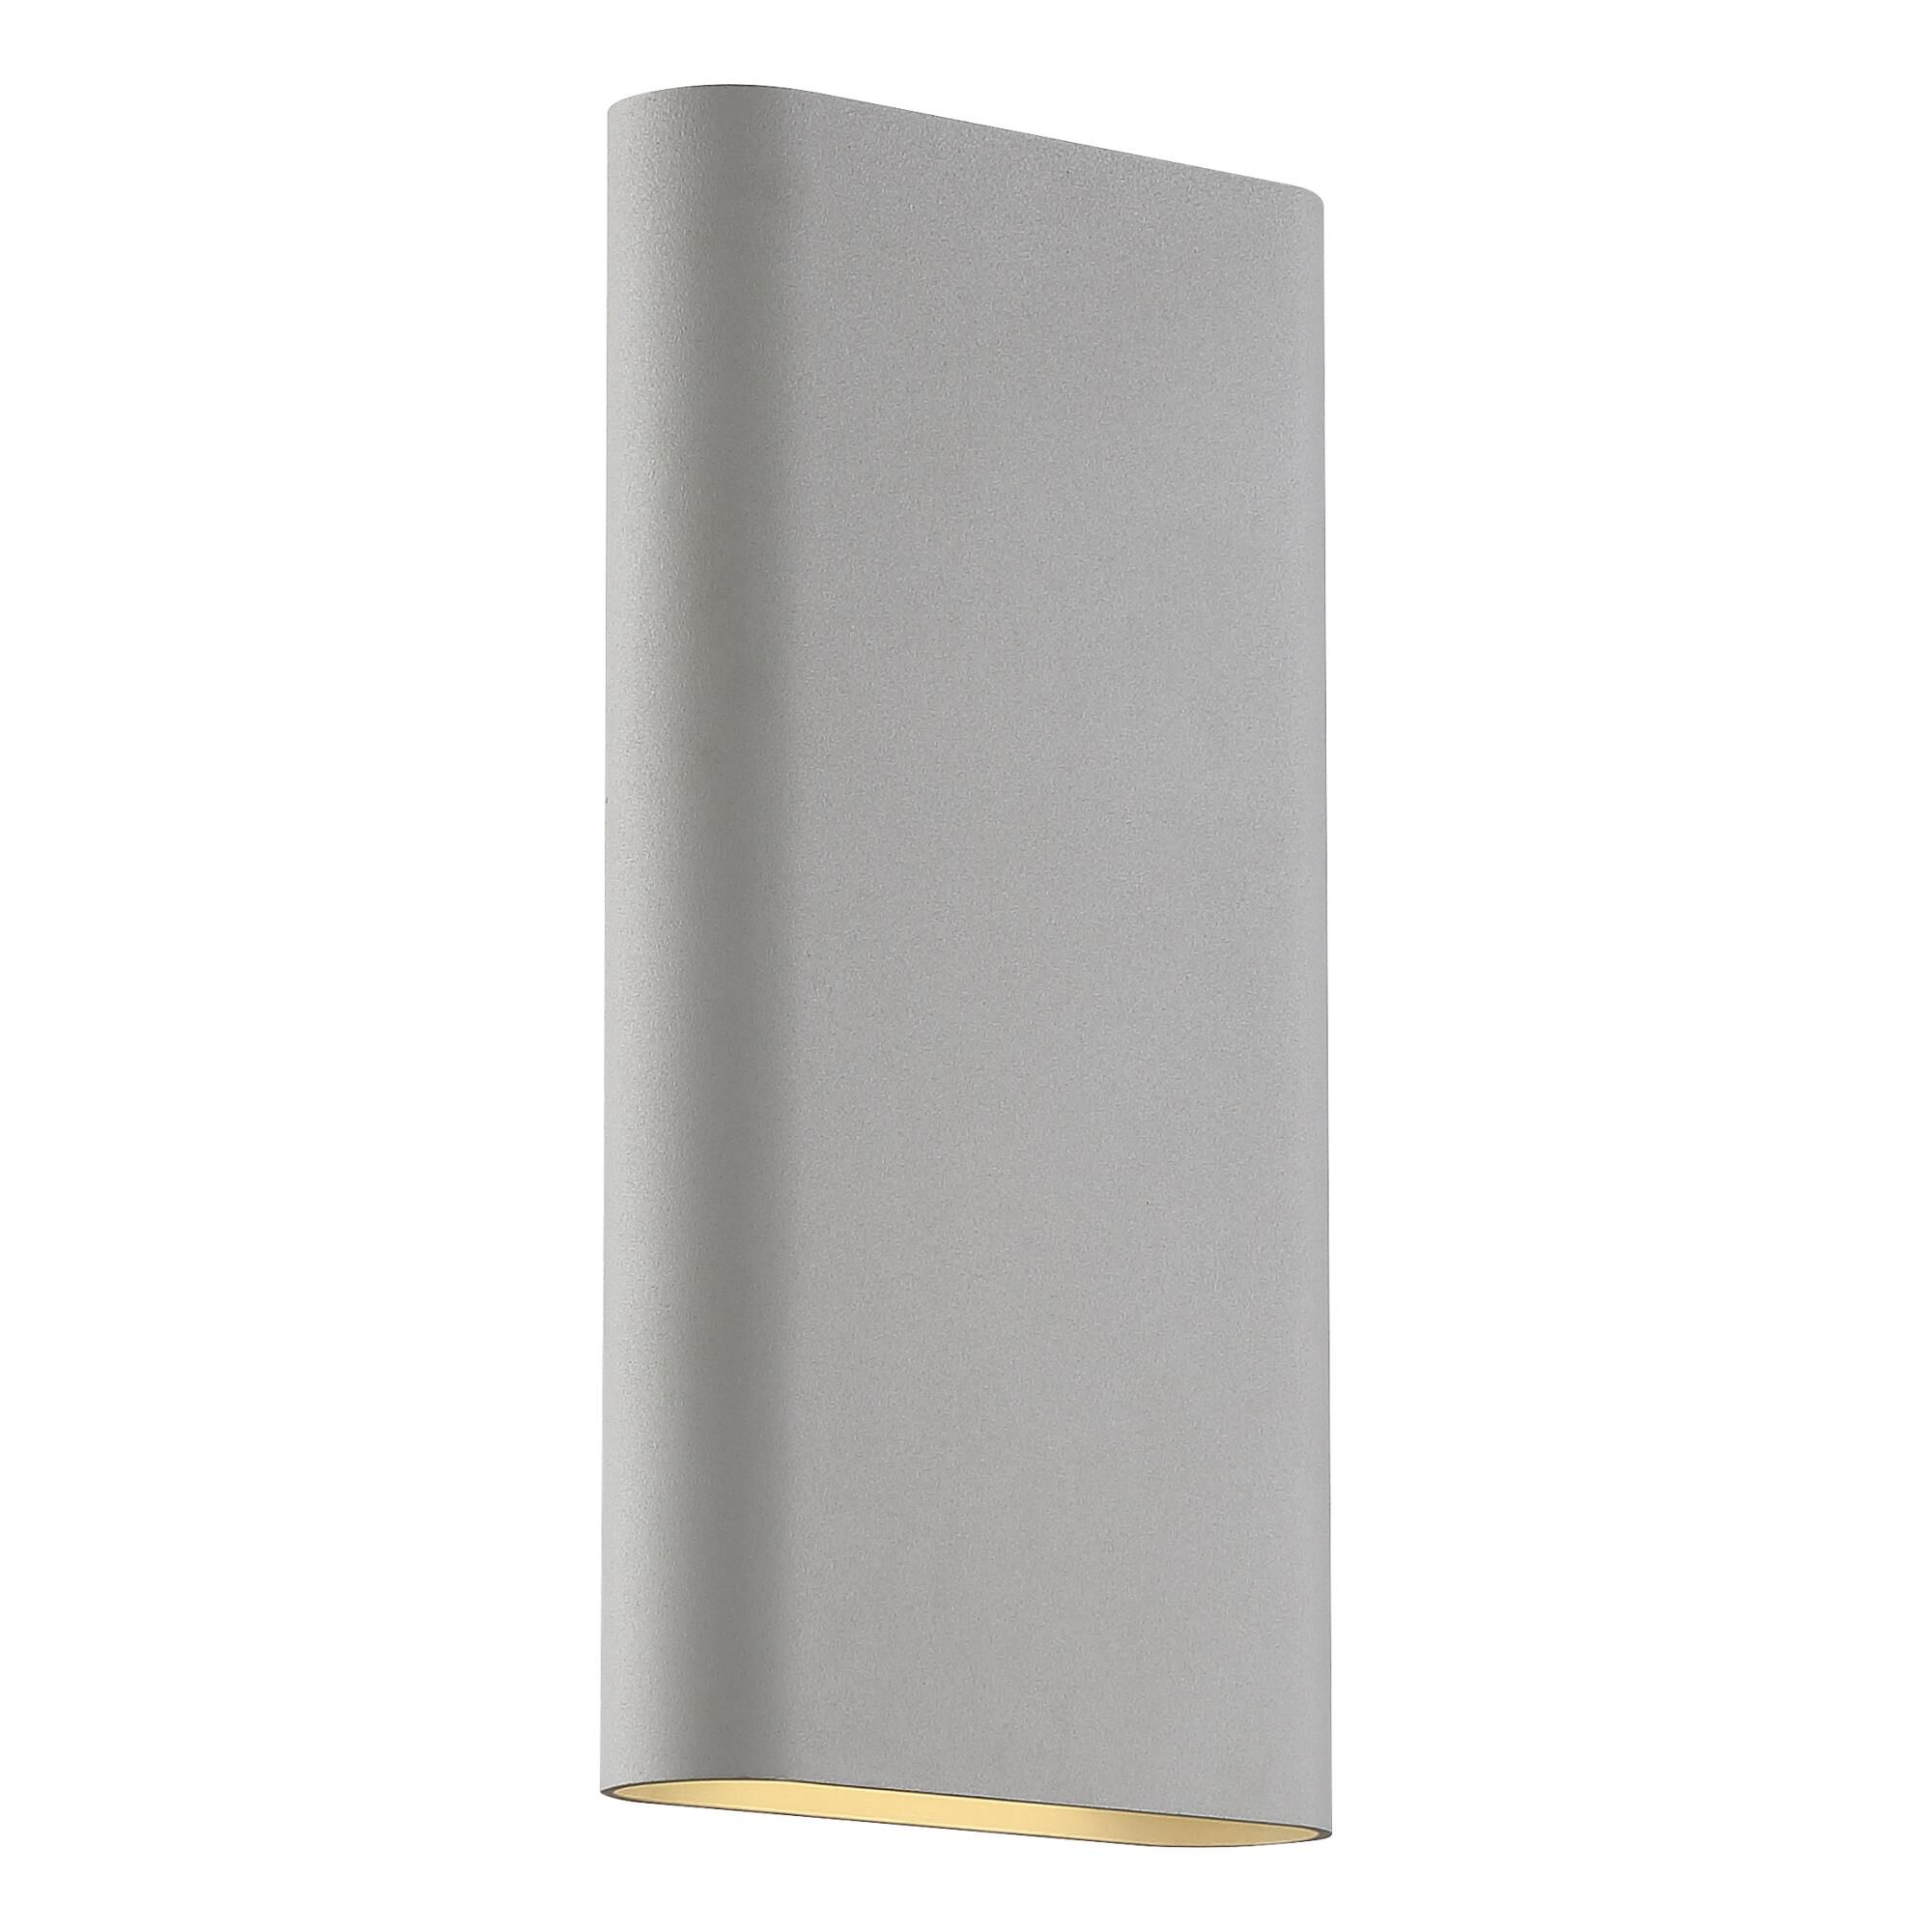 Access Lighting Lux 12 Inch LED Wall Sconce Lux 20409LEDD SAT Modern Contemporary